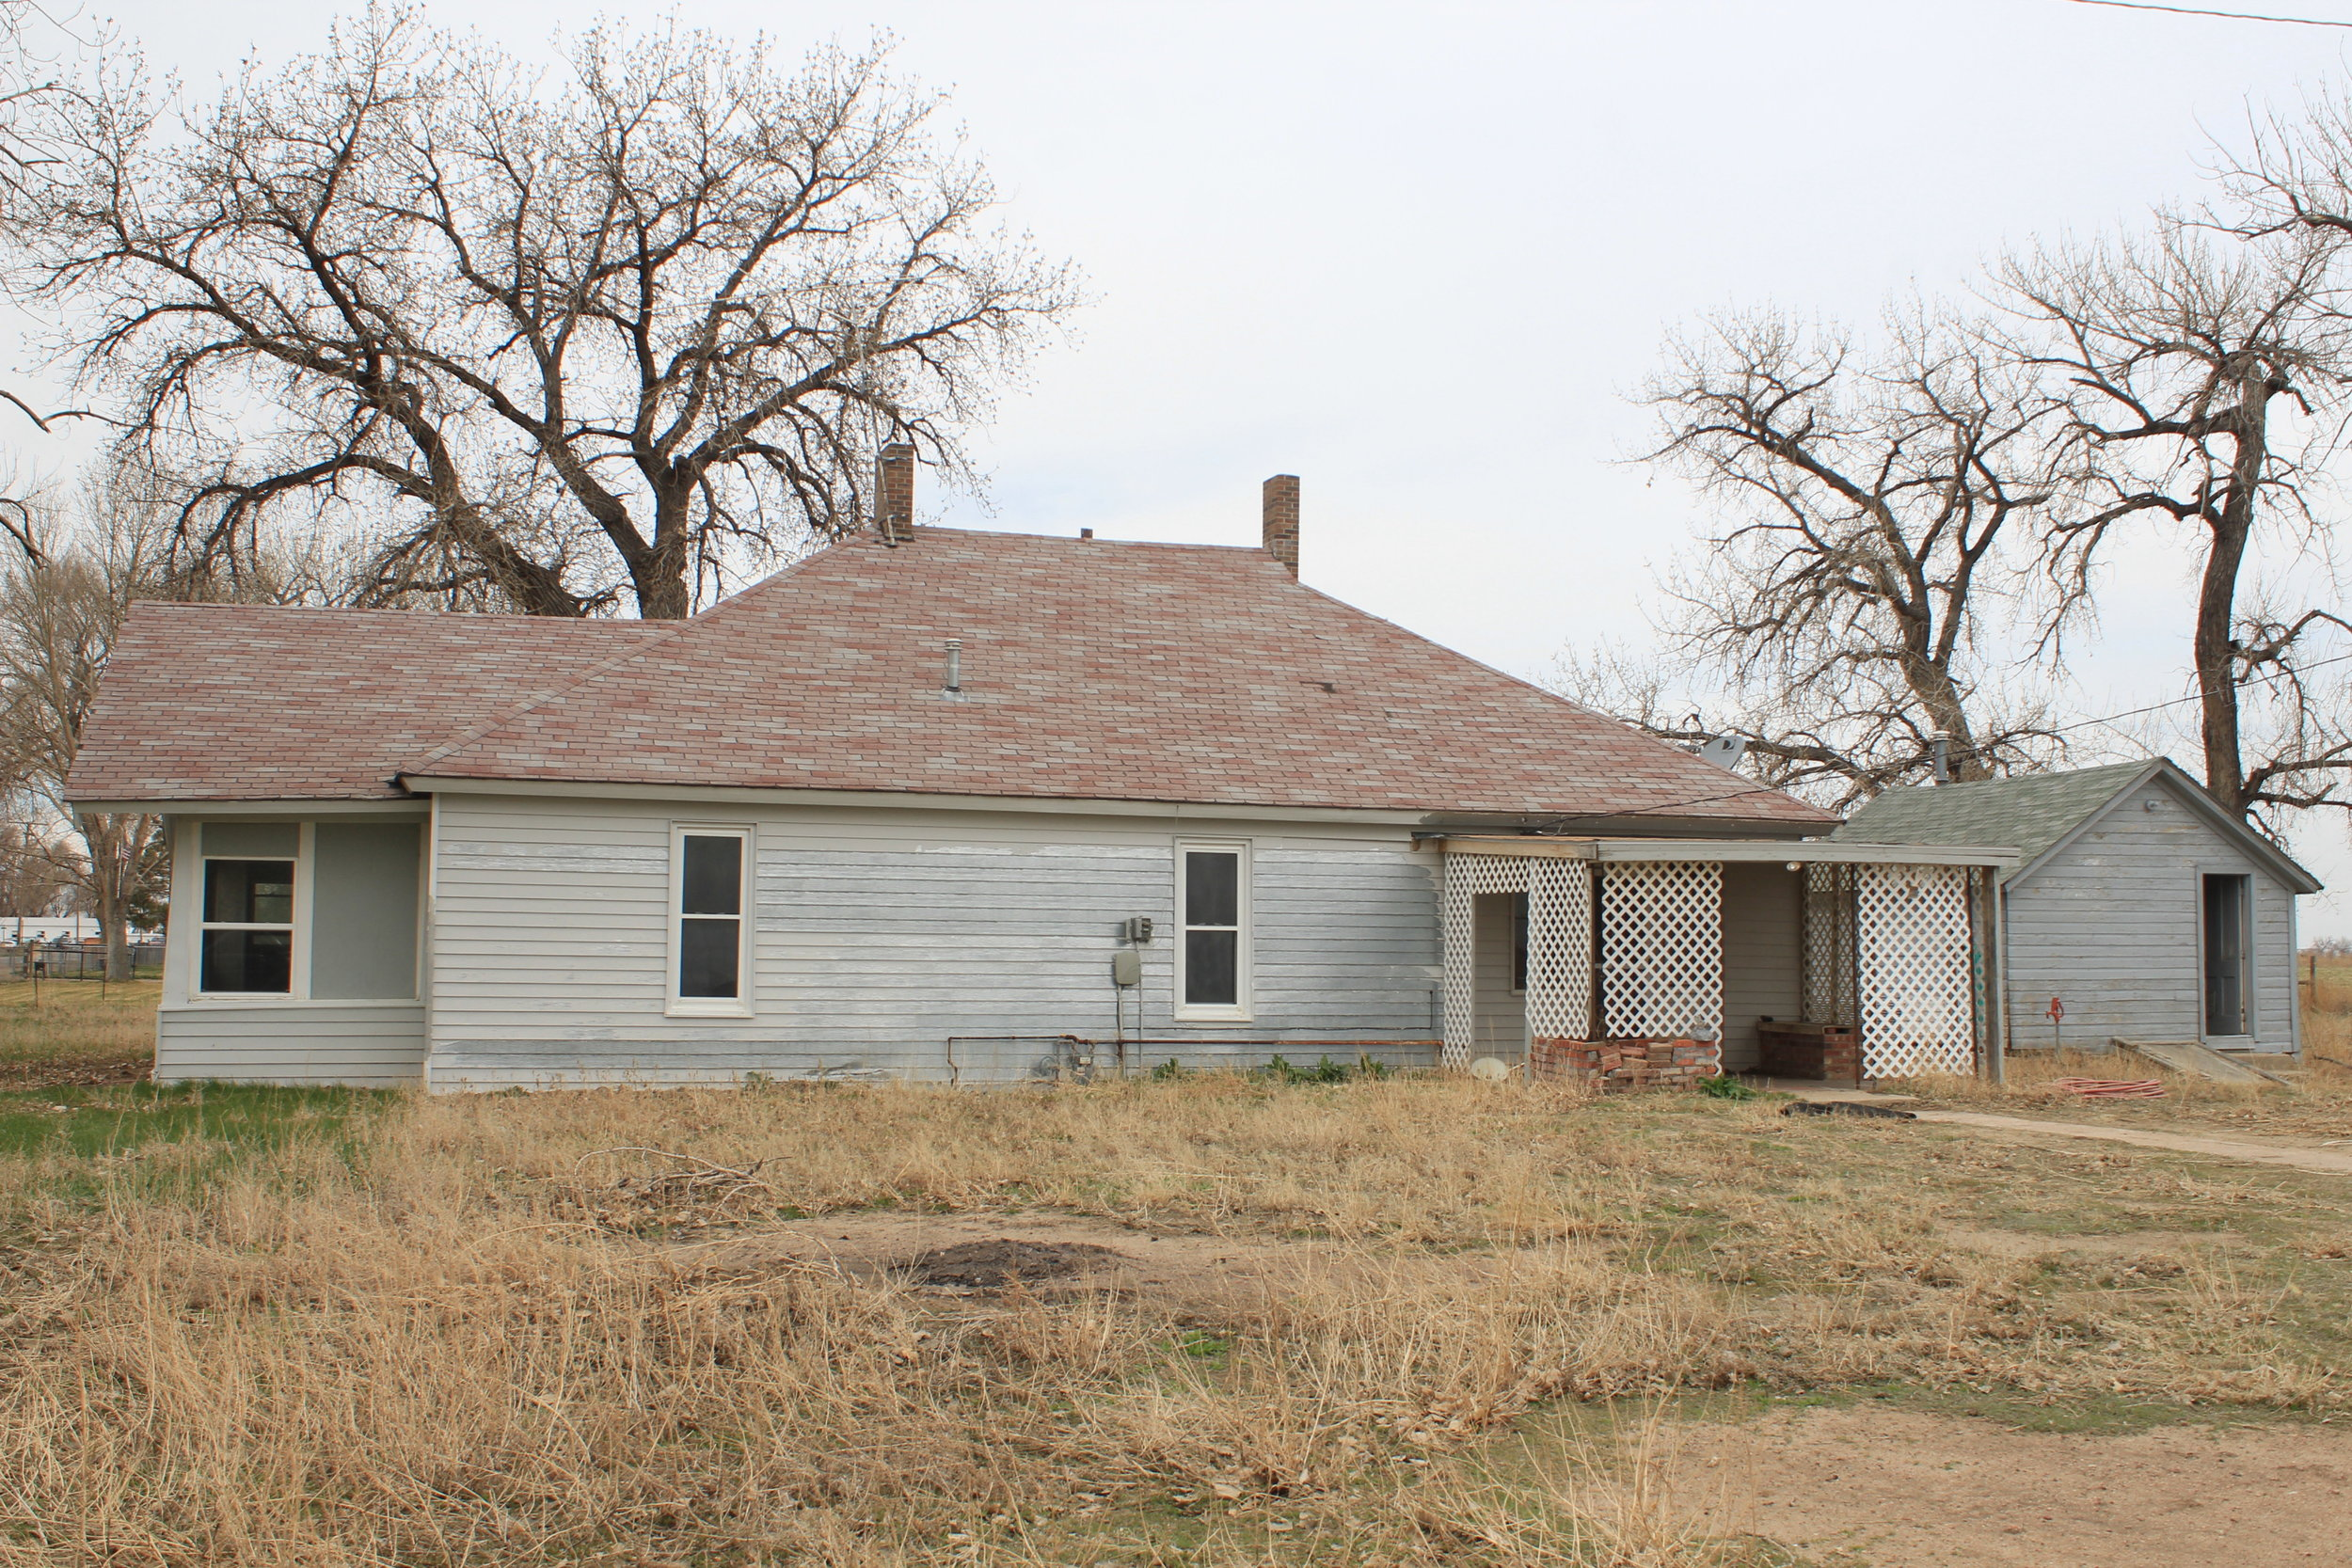 9643 County Road Y, Weldona, CO  - 3 Bed, 1 BathListed for: $199,900Status: SOLDListed by Adriana Otero